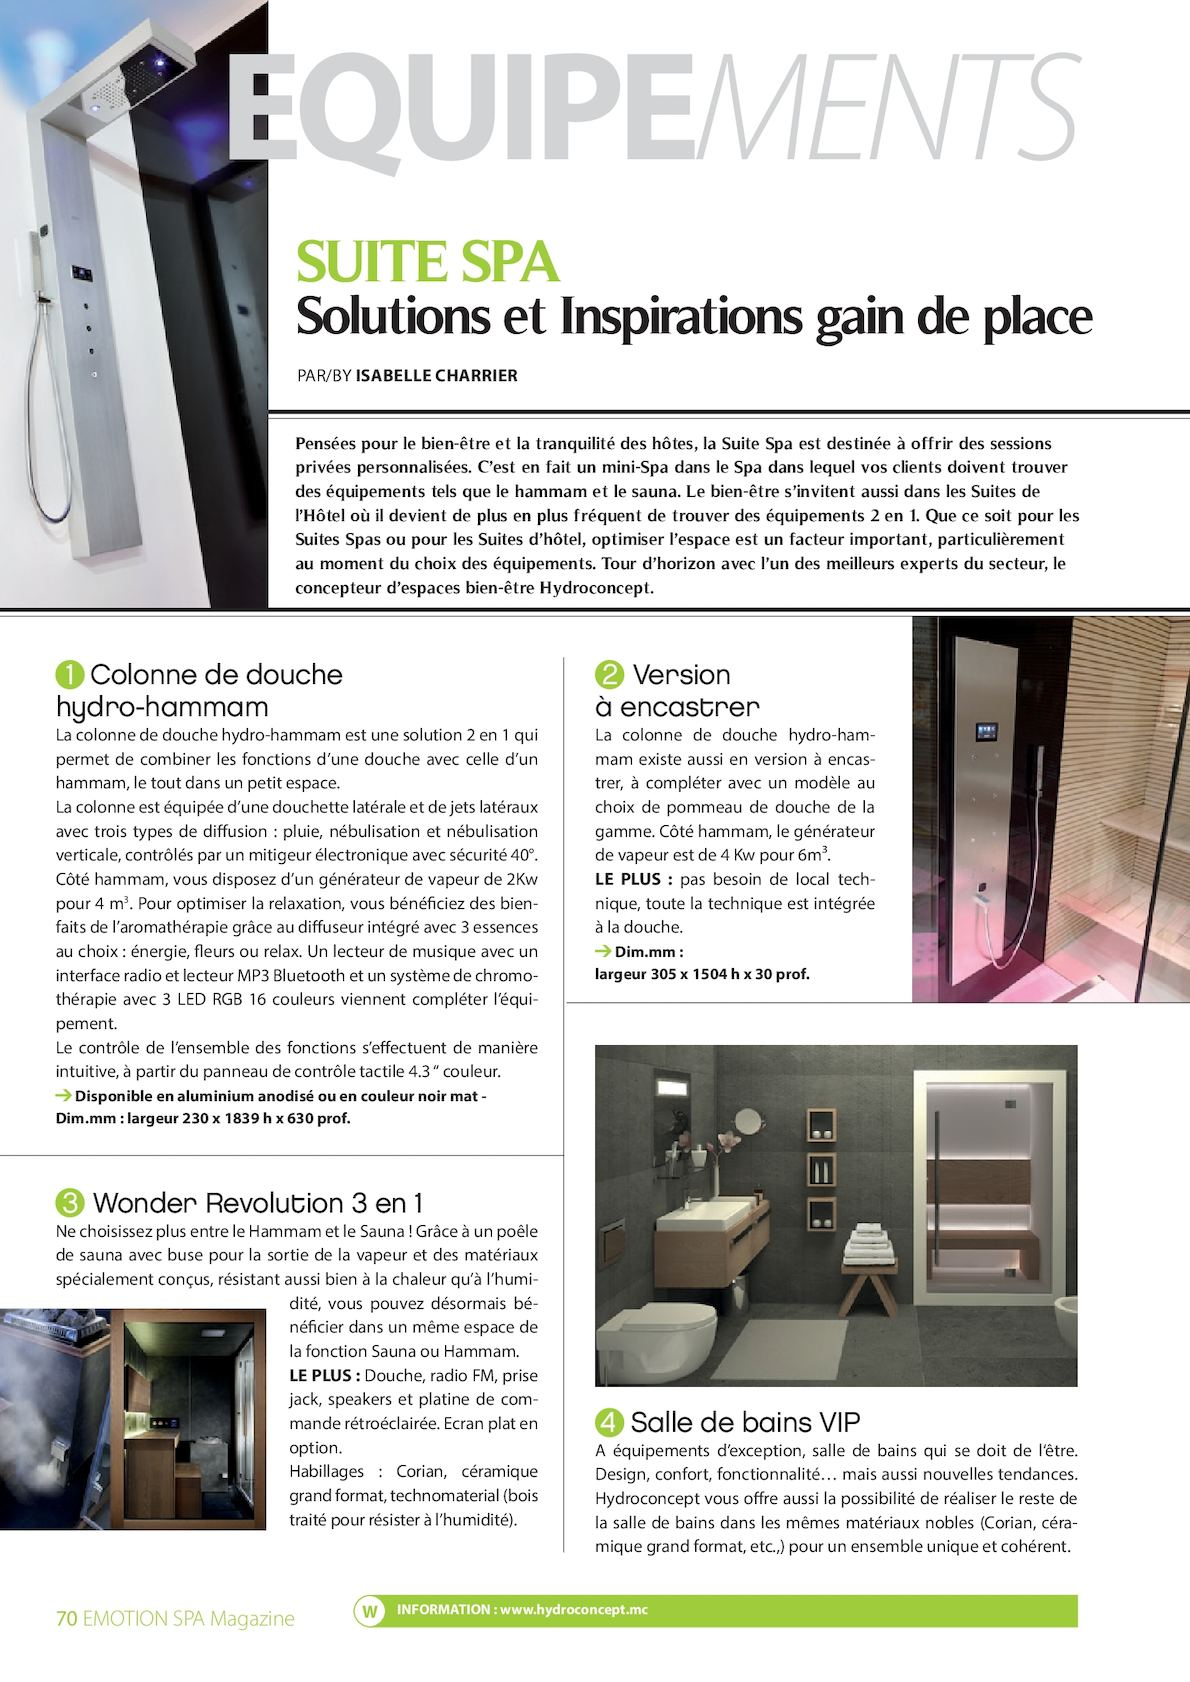 Emotion Spa Magazine 42 Calameo Downloader